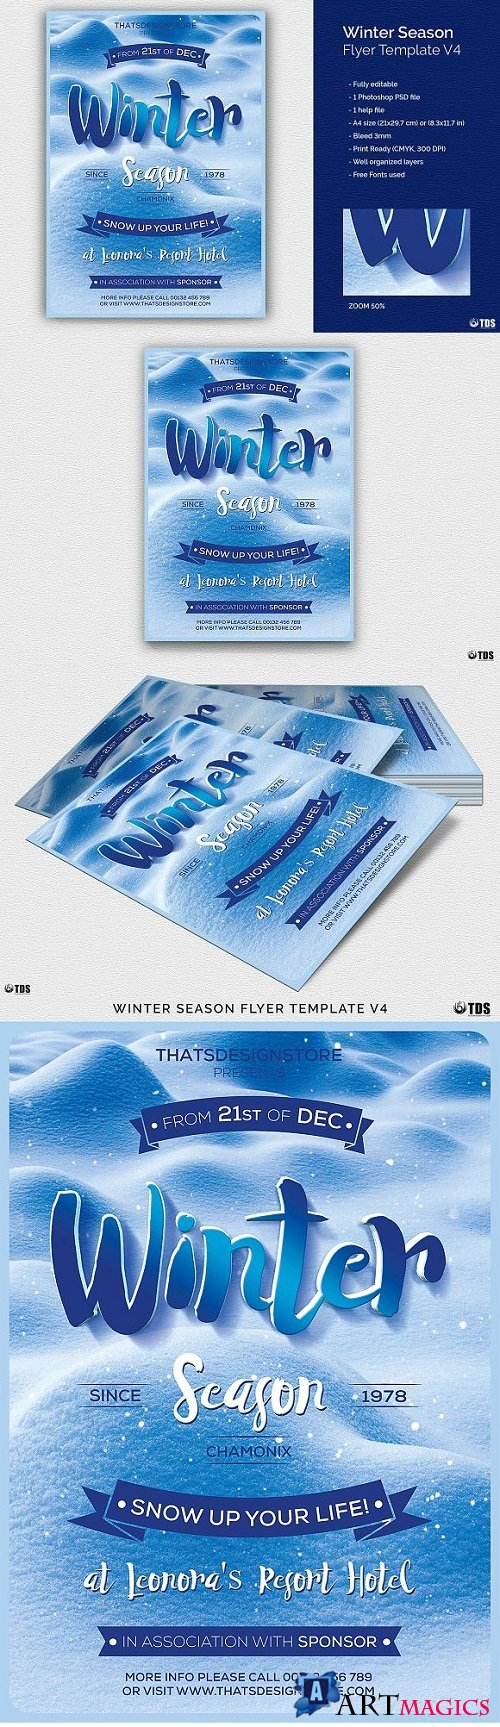 Winter Season Flyer Template V4 2037380